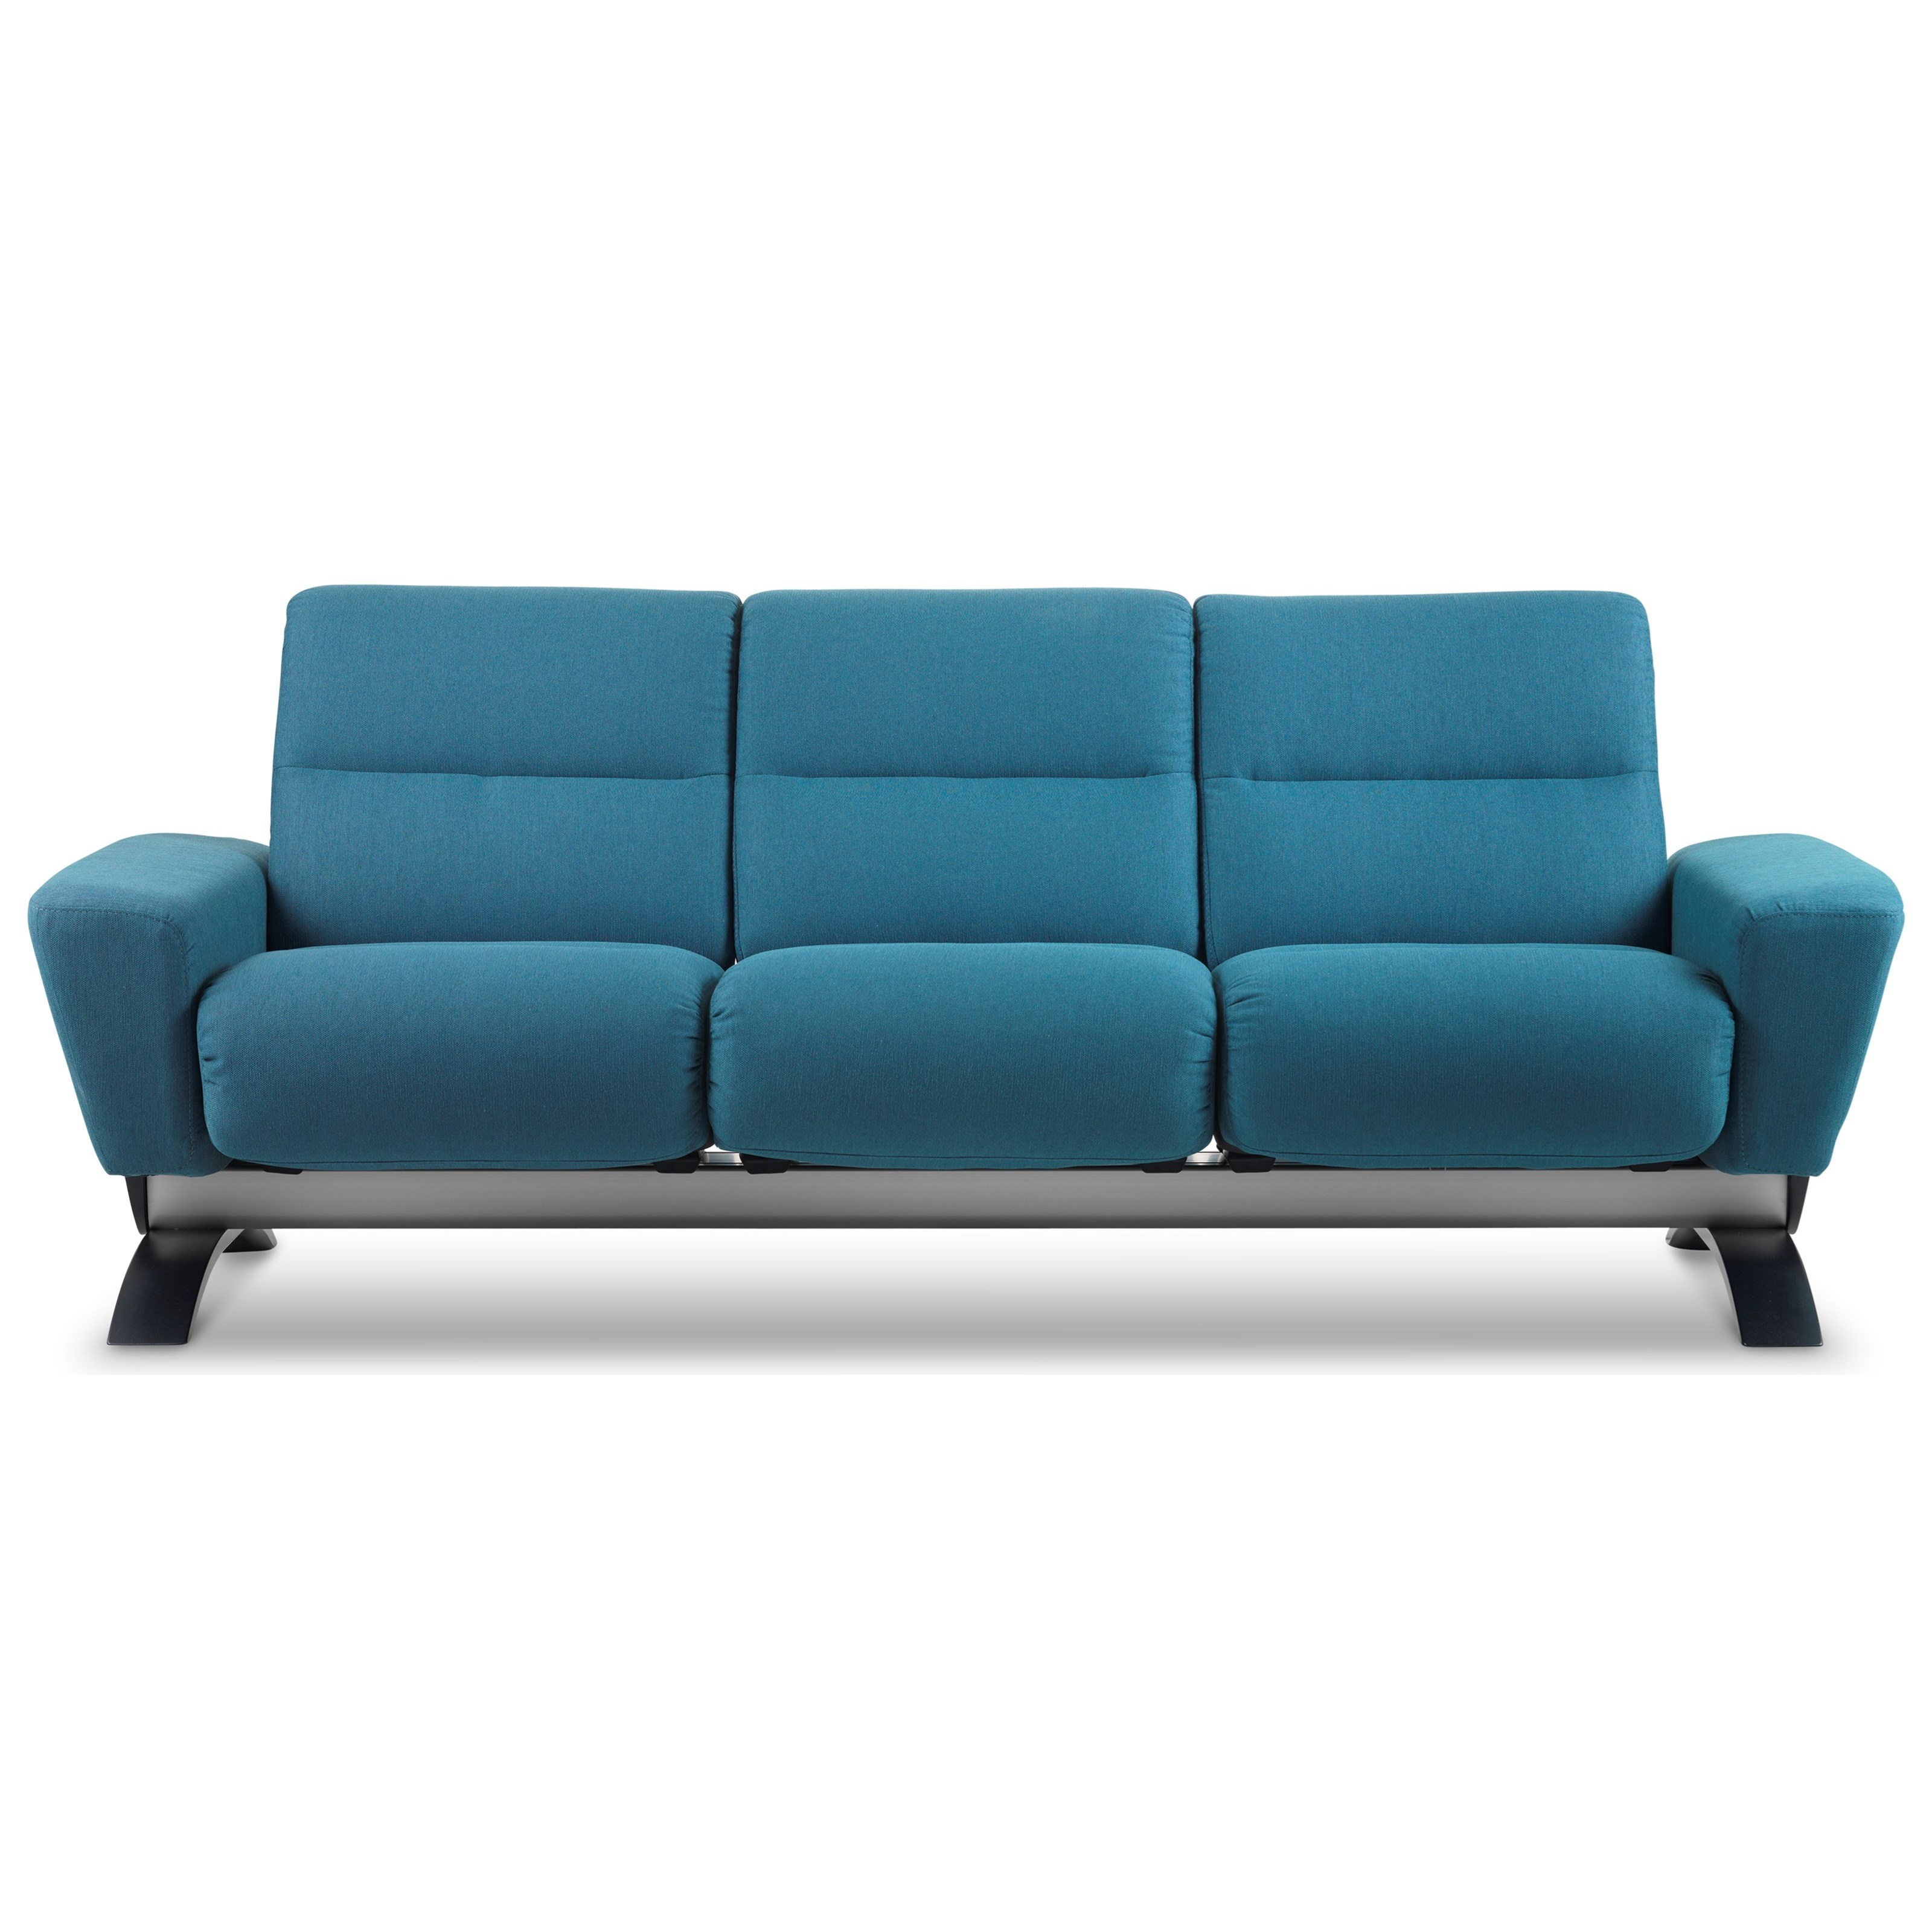 Stressless By Ekornes Stressless You Julia 3 Seater Sofa With Balanceadapt Conlin 39 S Furniture